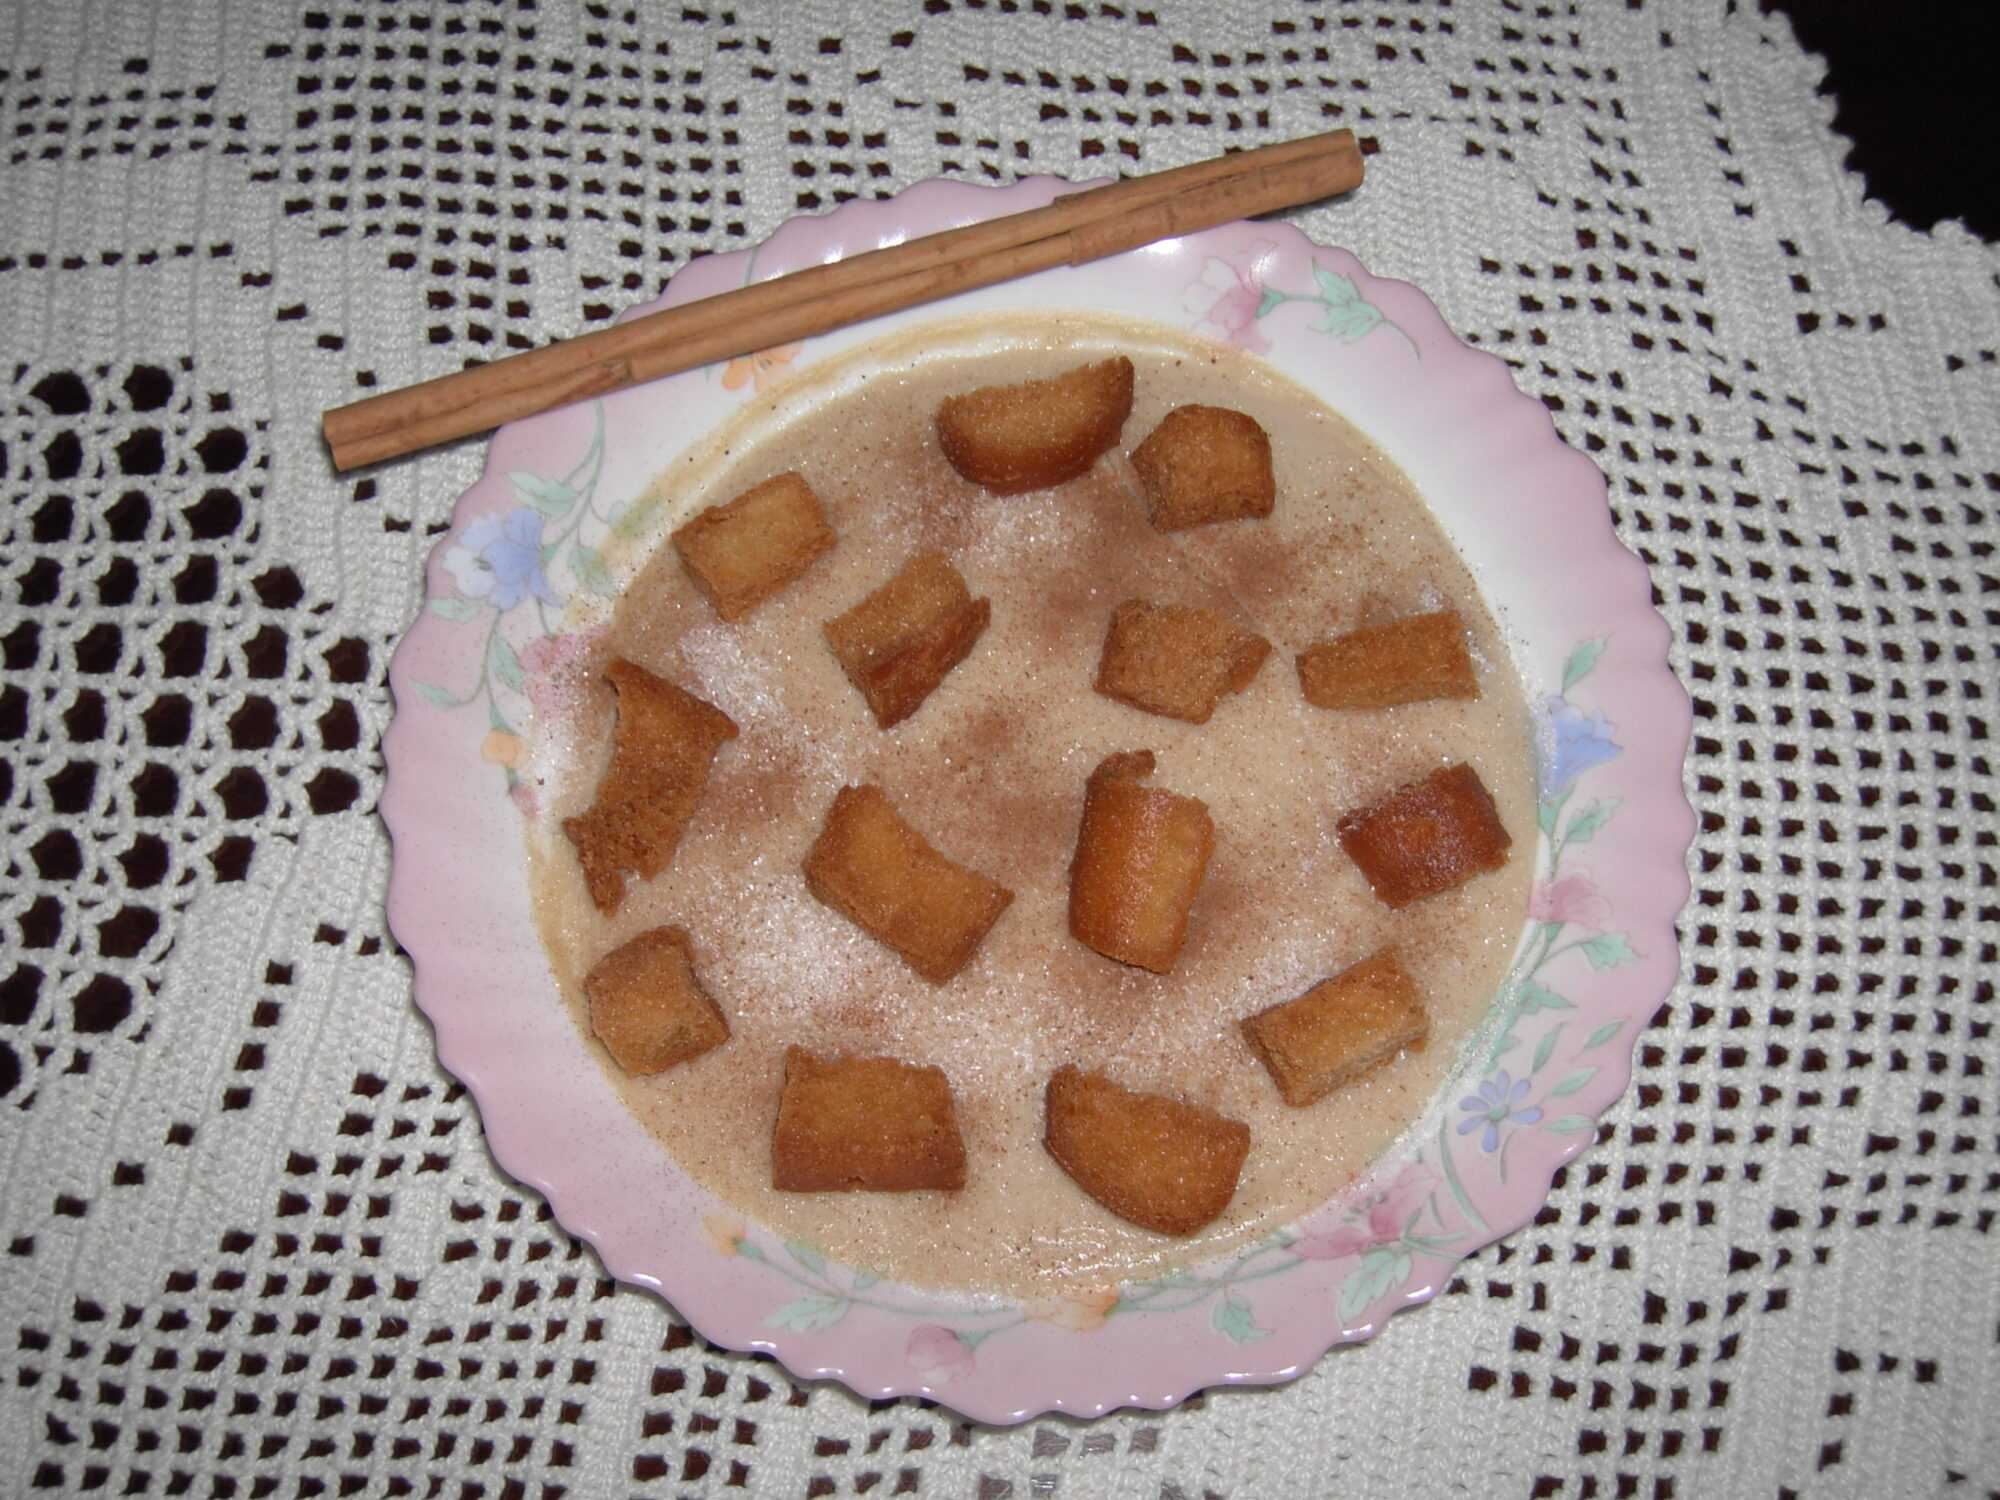 farinetes dolces thermomix